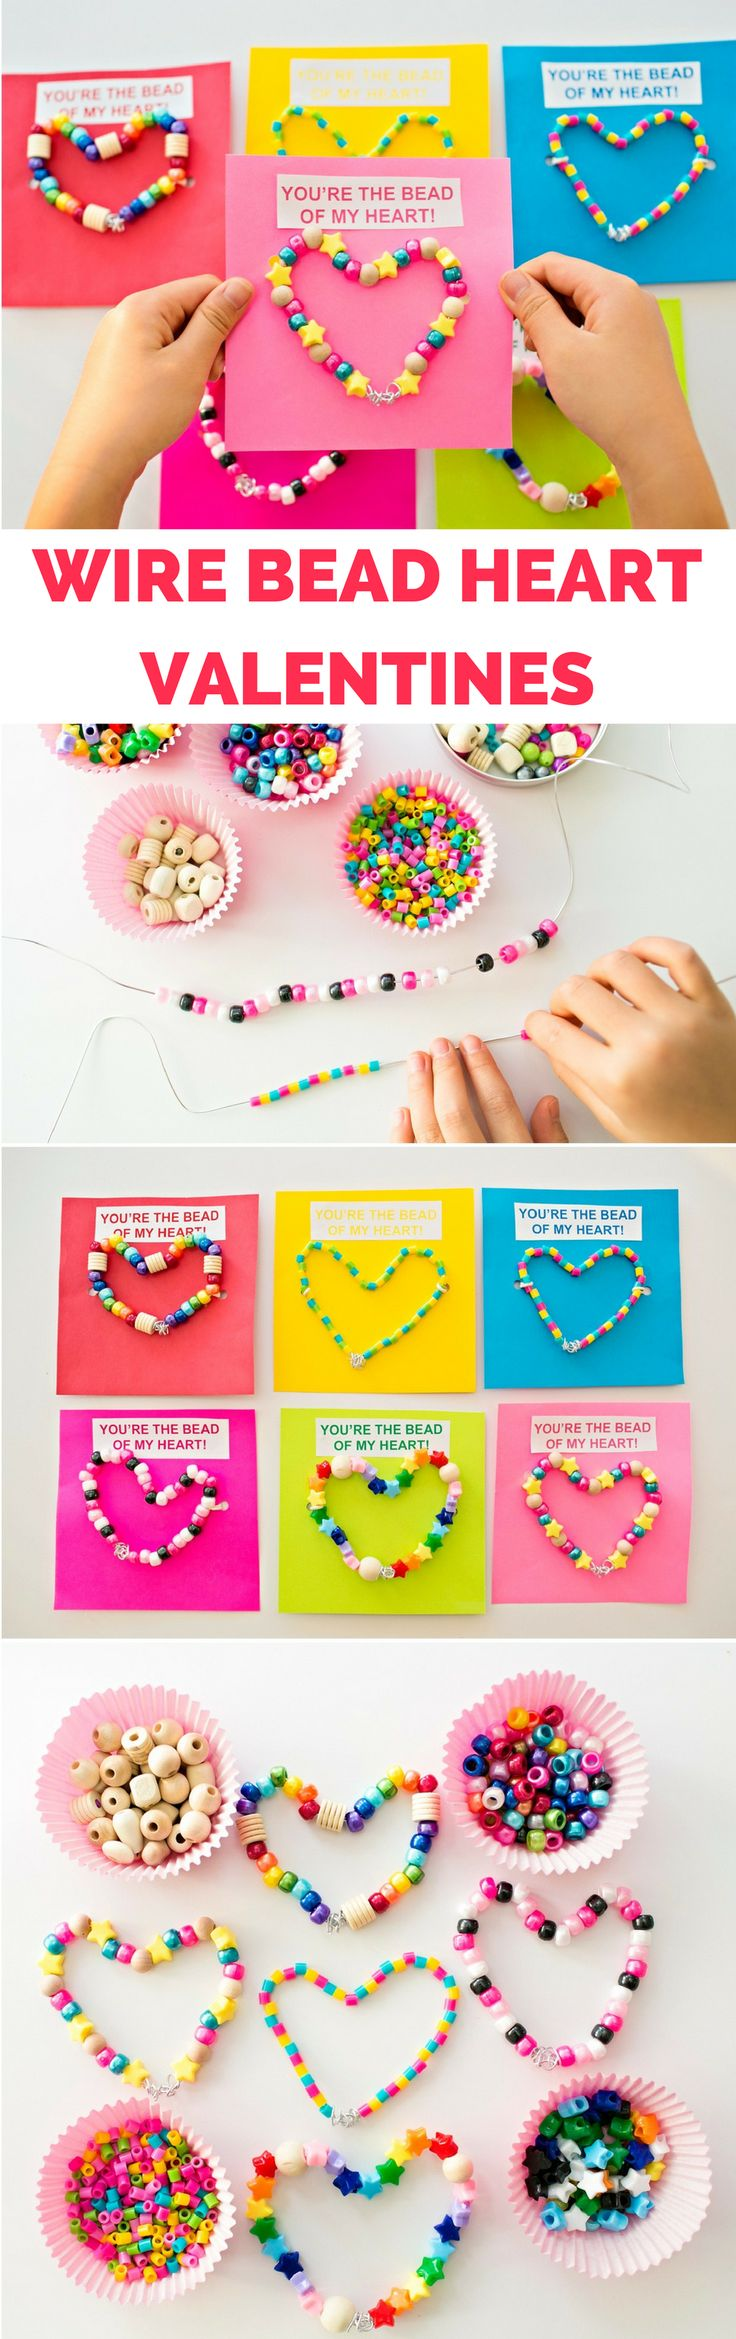 DIY Wire Bead Valentine Cards Kids Can Make. Cute Valentine favors for kids with free printable tags.